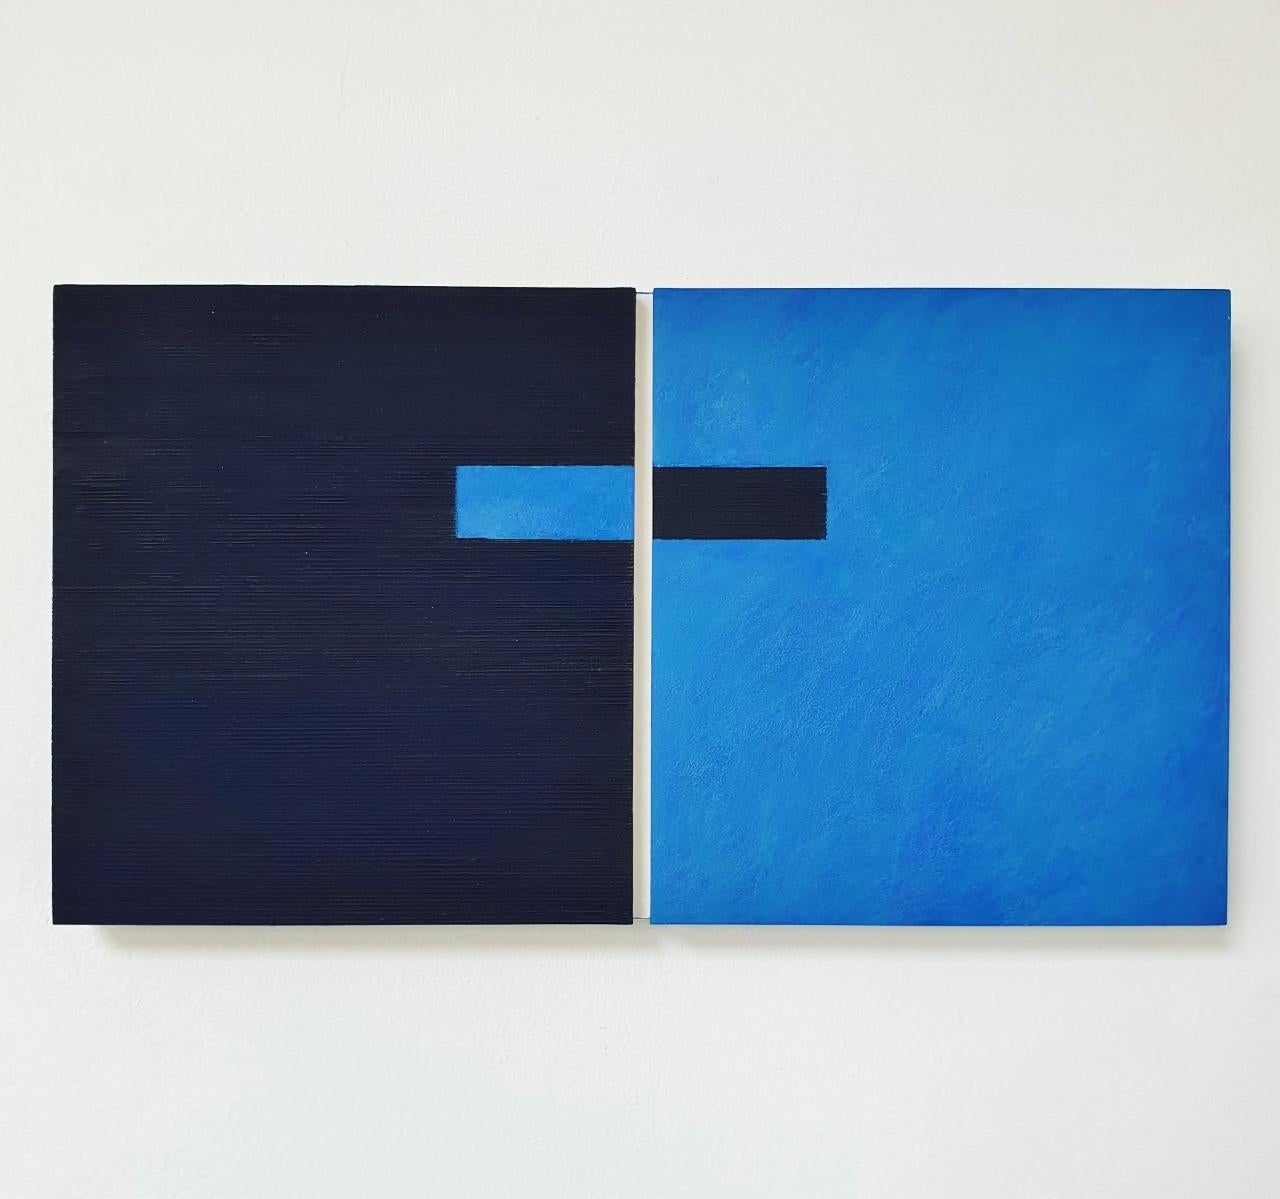 Juxtaposition IV - contemporary modern geometric sculpture painting panel